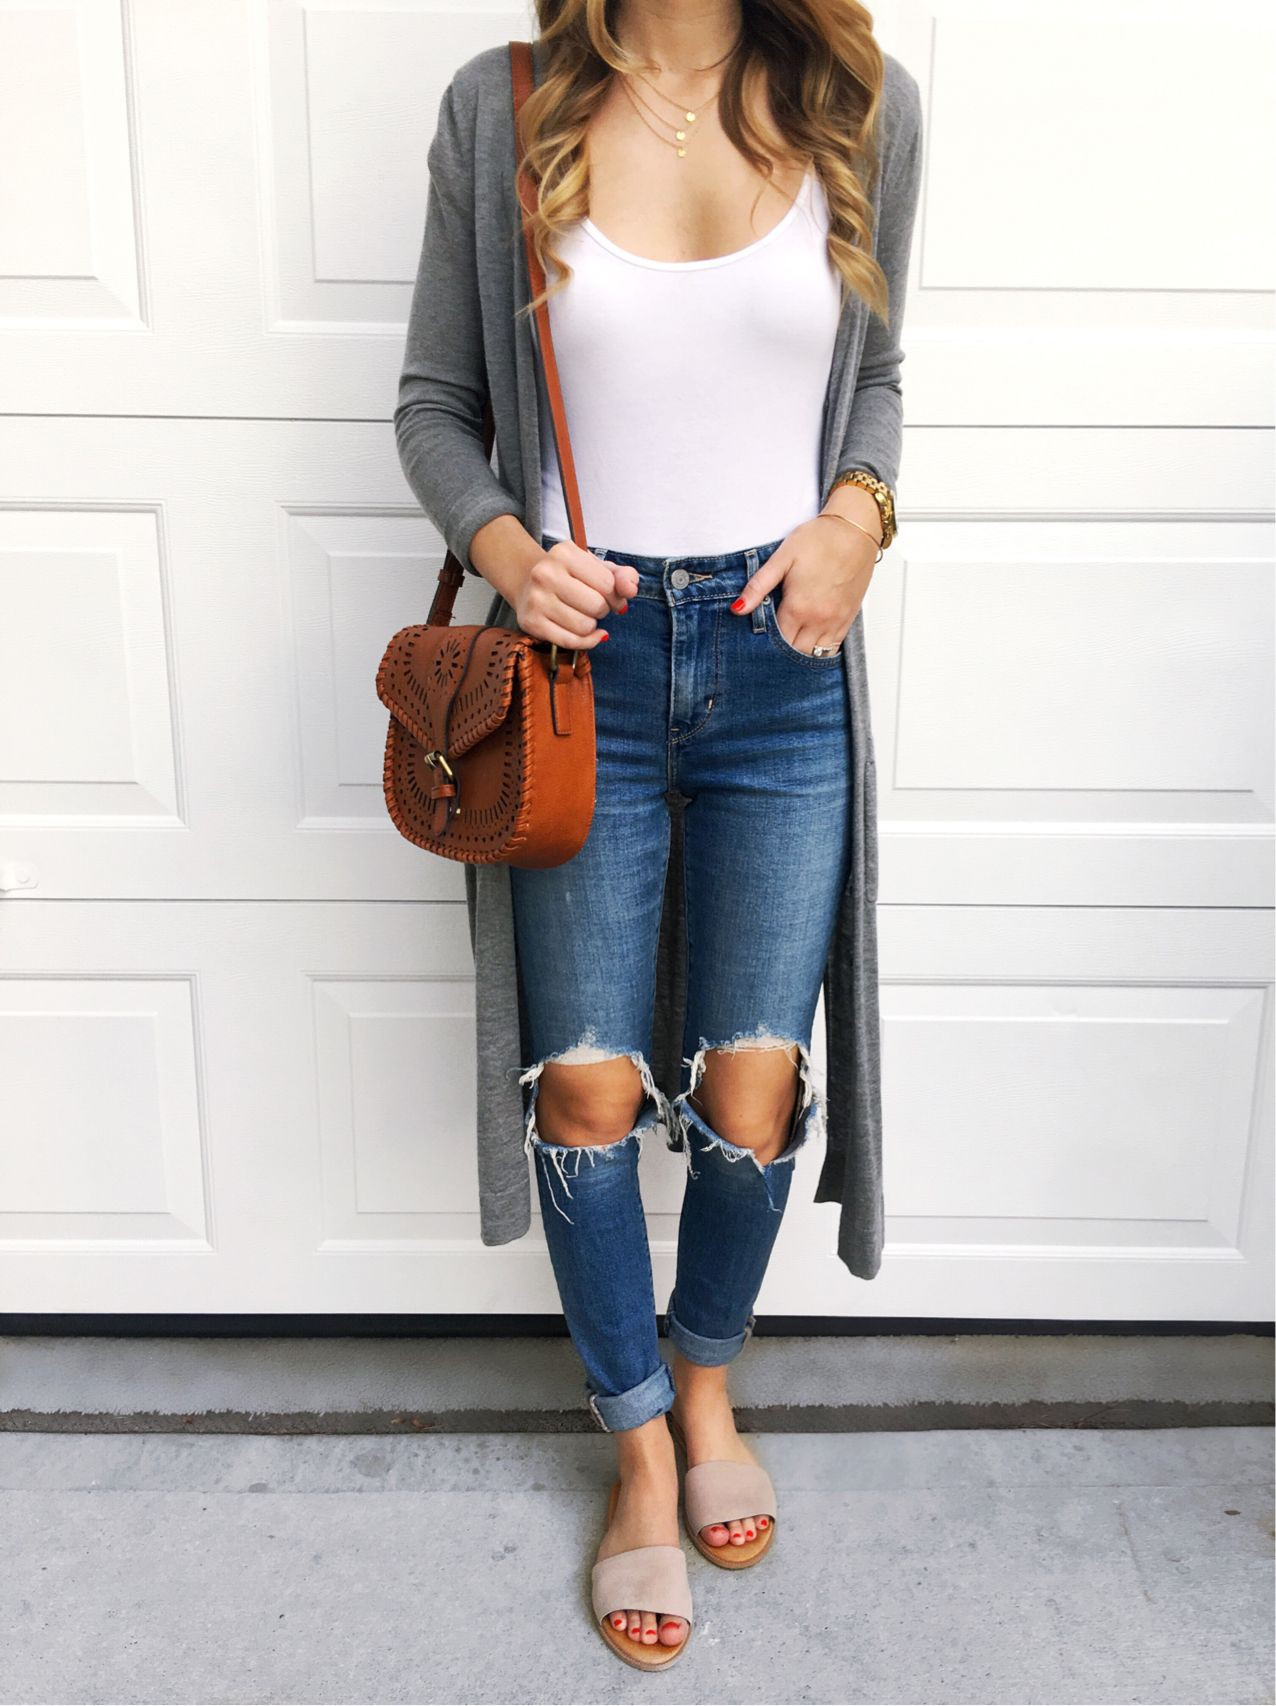 Blue outfit ideas with trousers, crop top, jacket